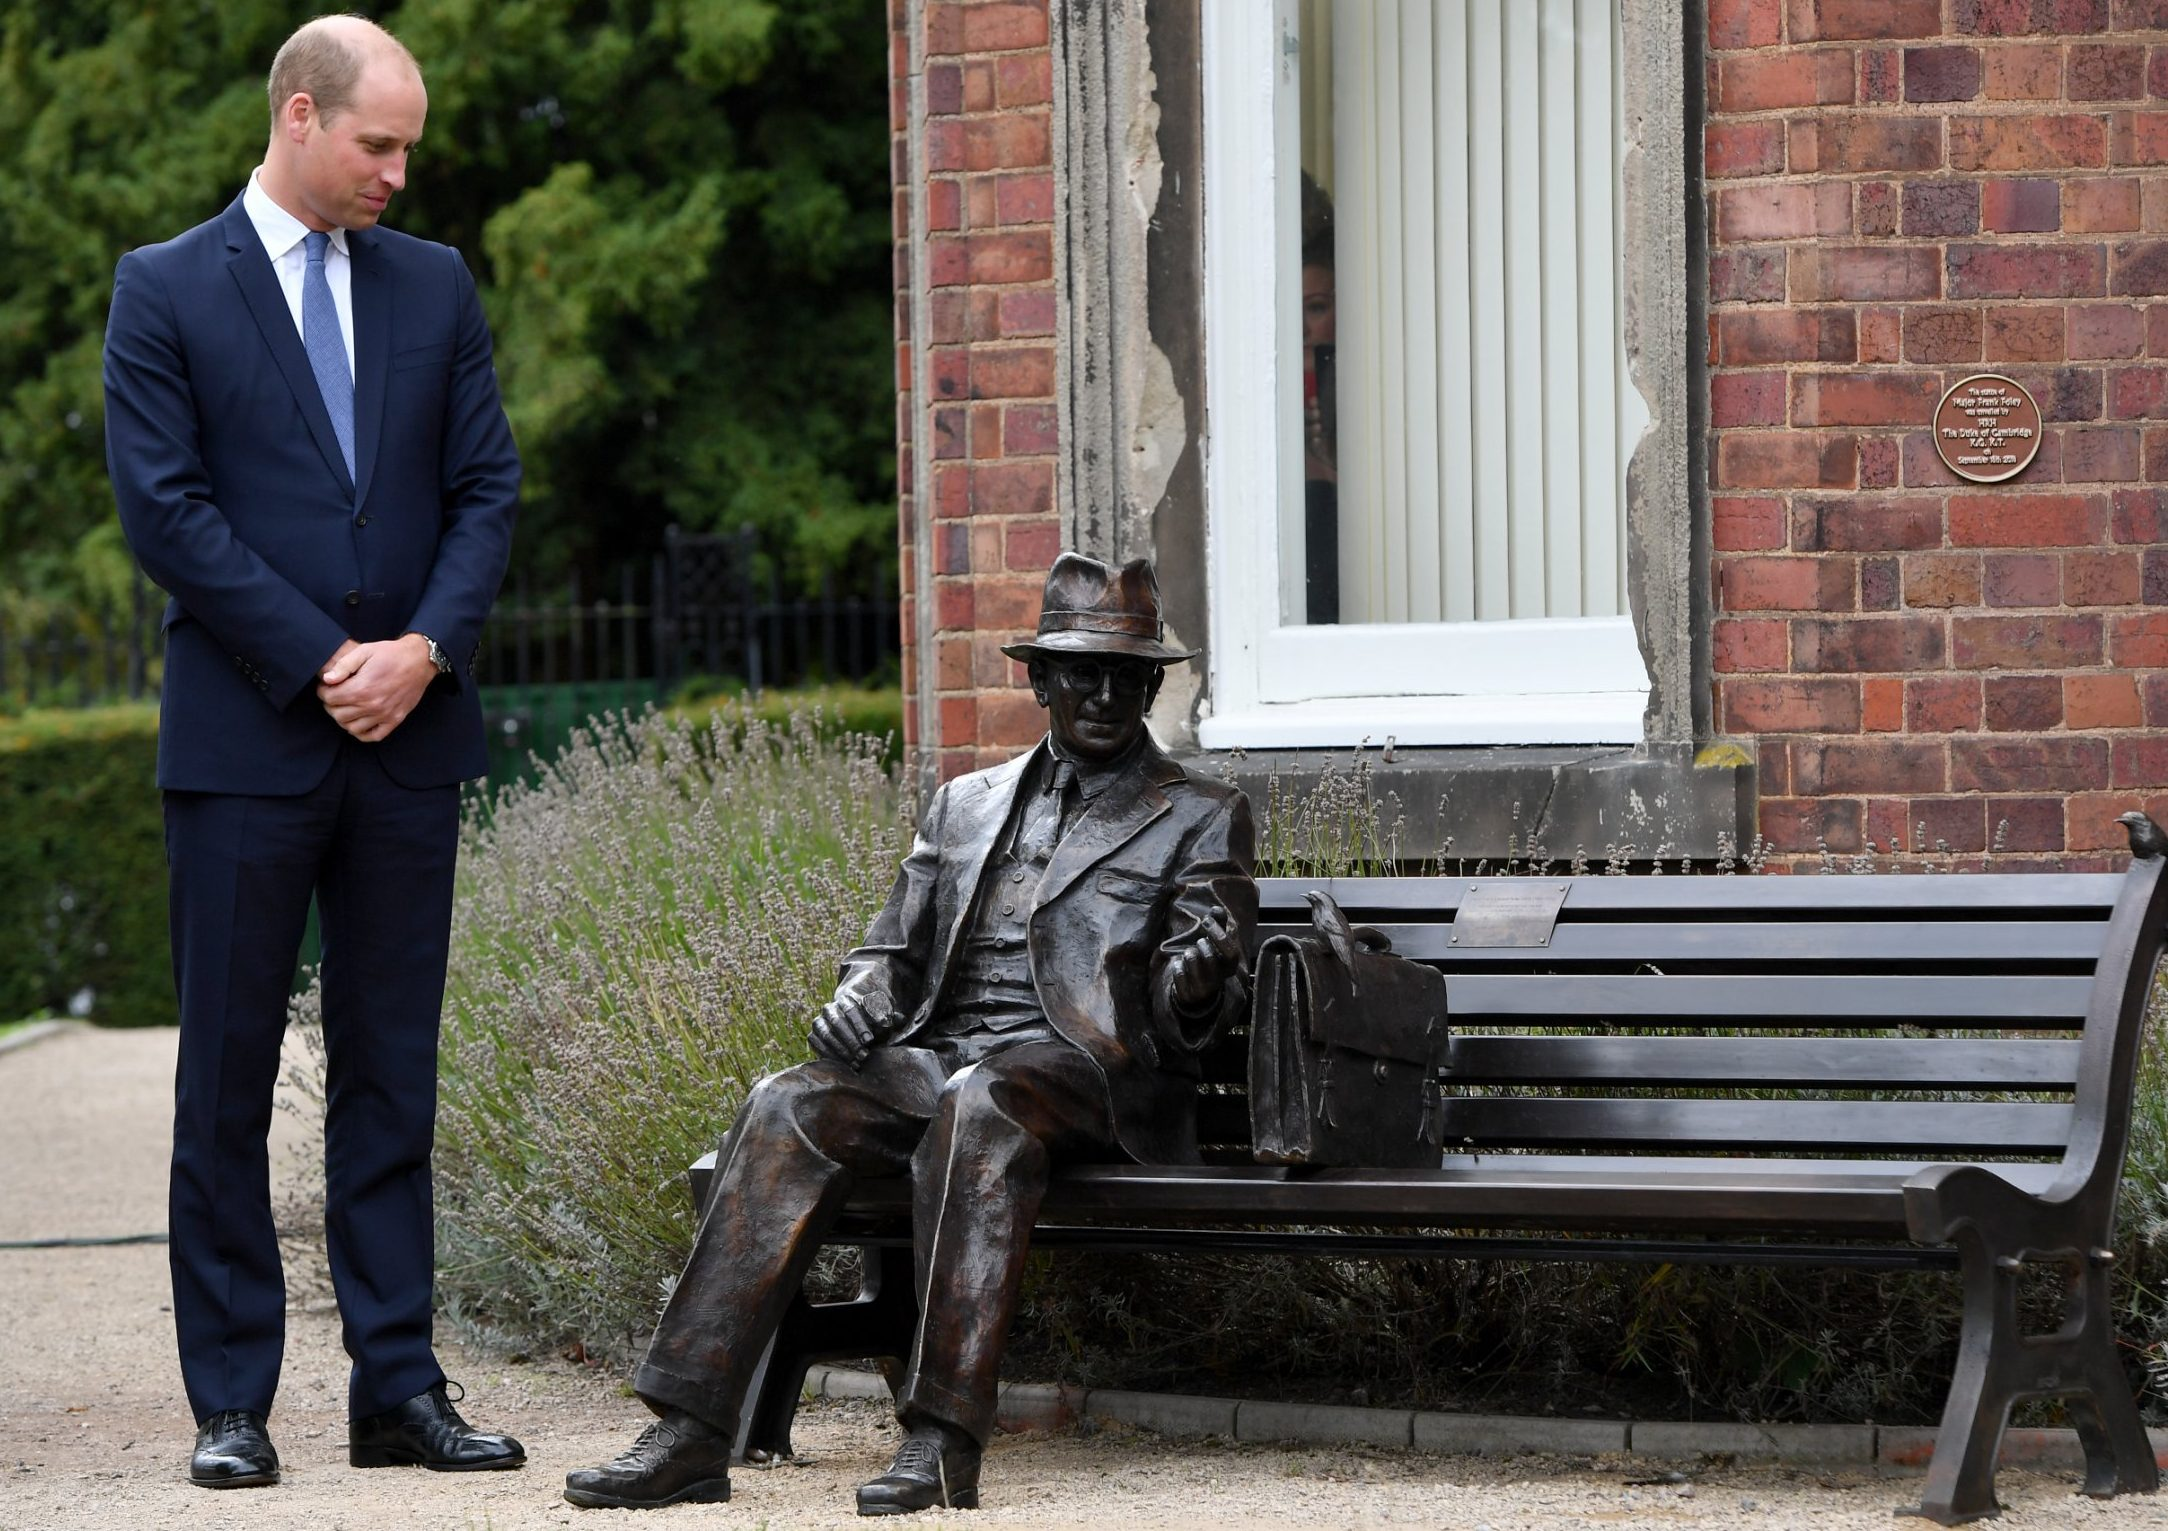 British spy who saved thousands of Jews from Nazi Germany honoured with symbolic statue